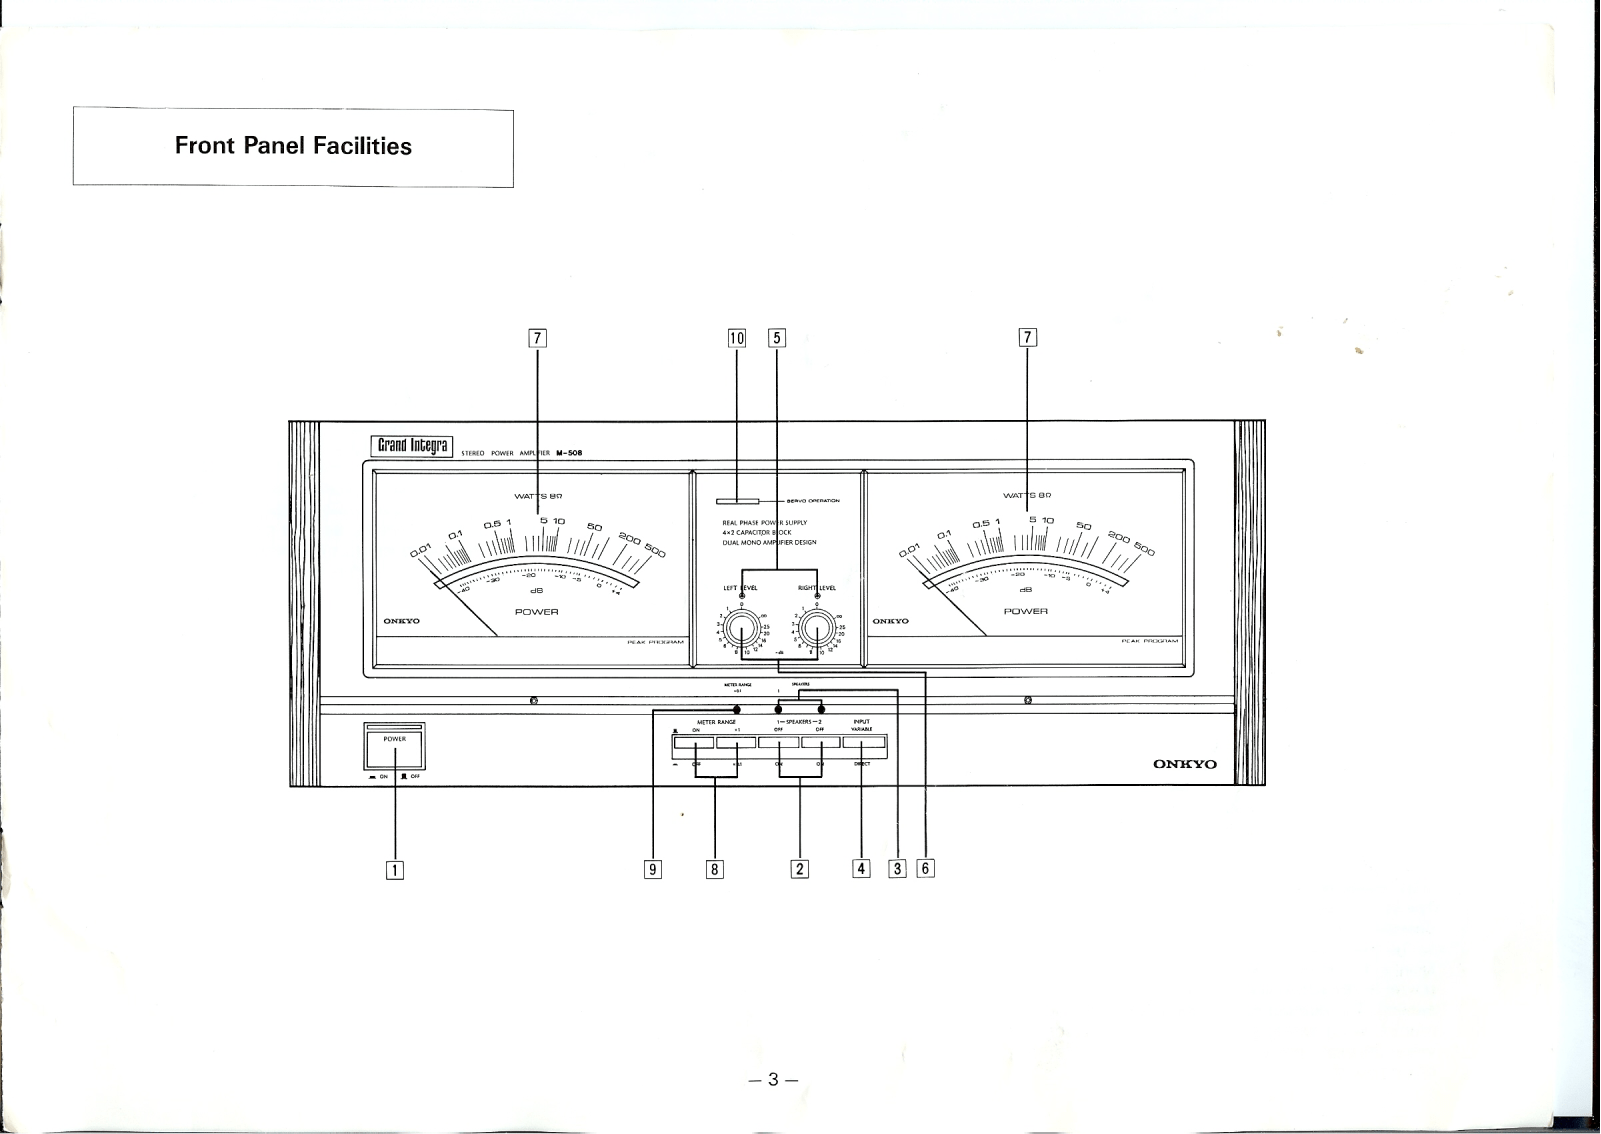 Onkyo M-508 Owners Manual